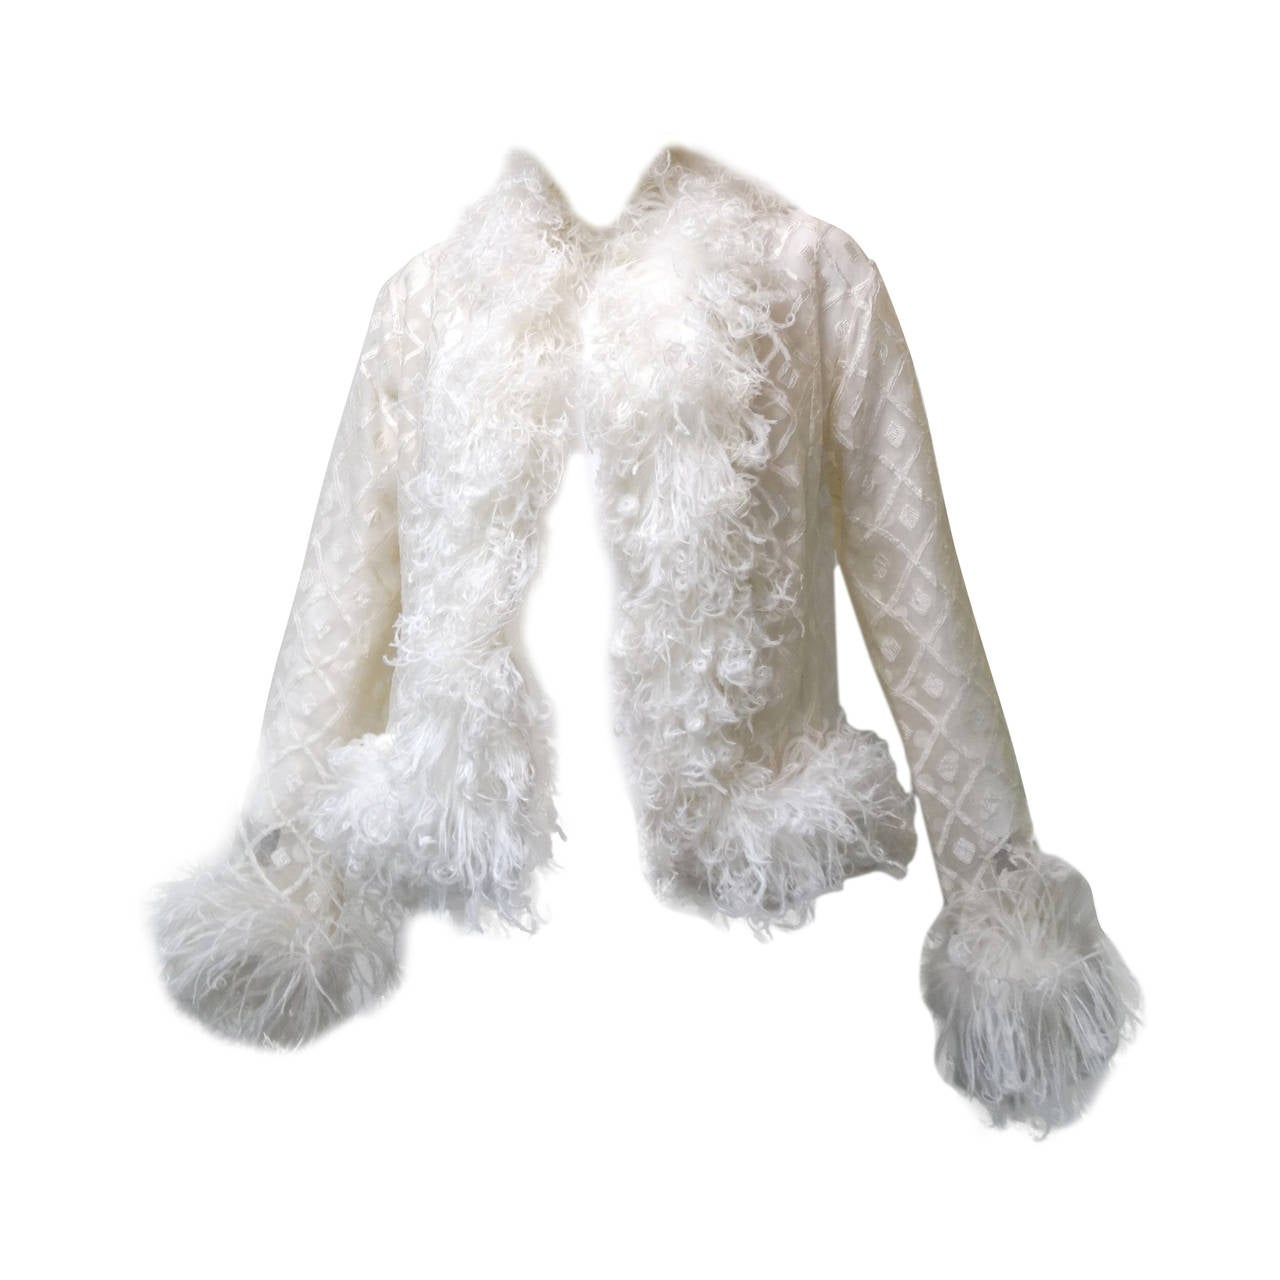 1970s Geoffrey Beene Evening Jacket with Ostrich Feathers 1